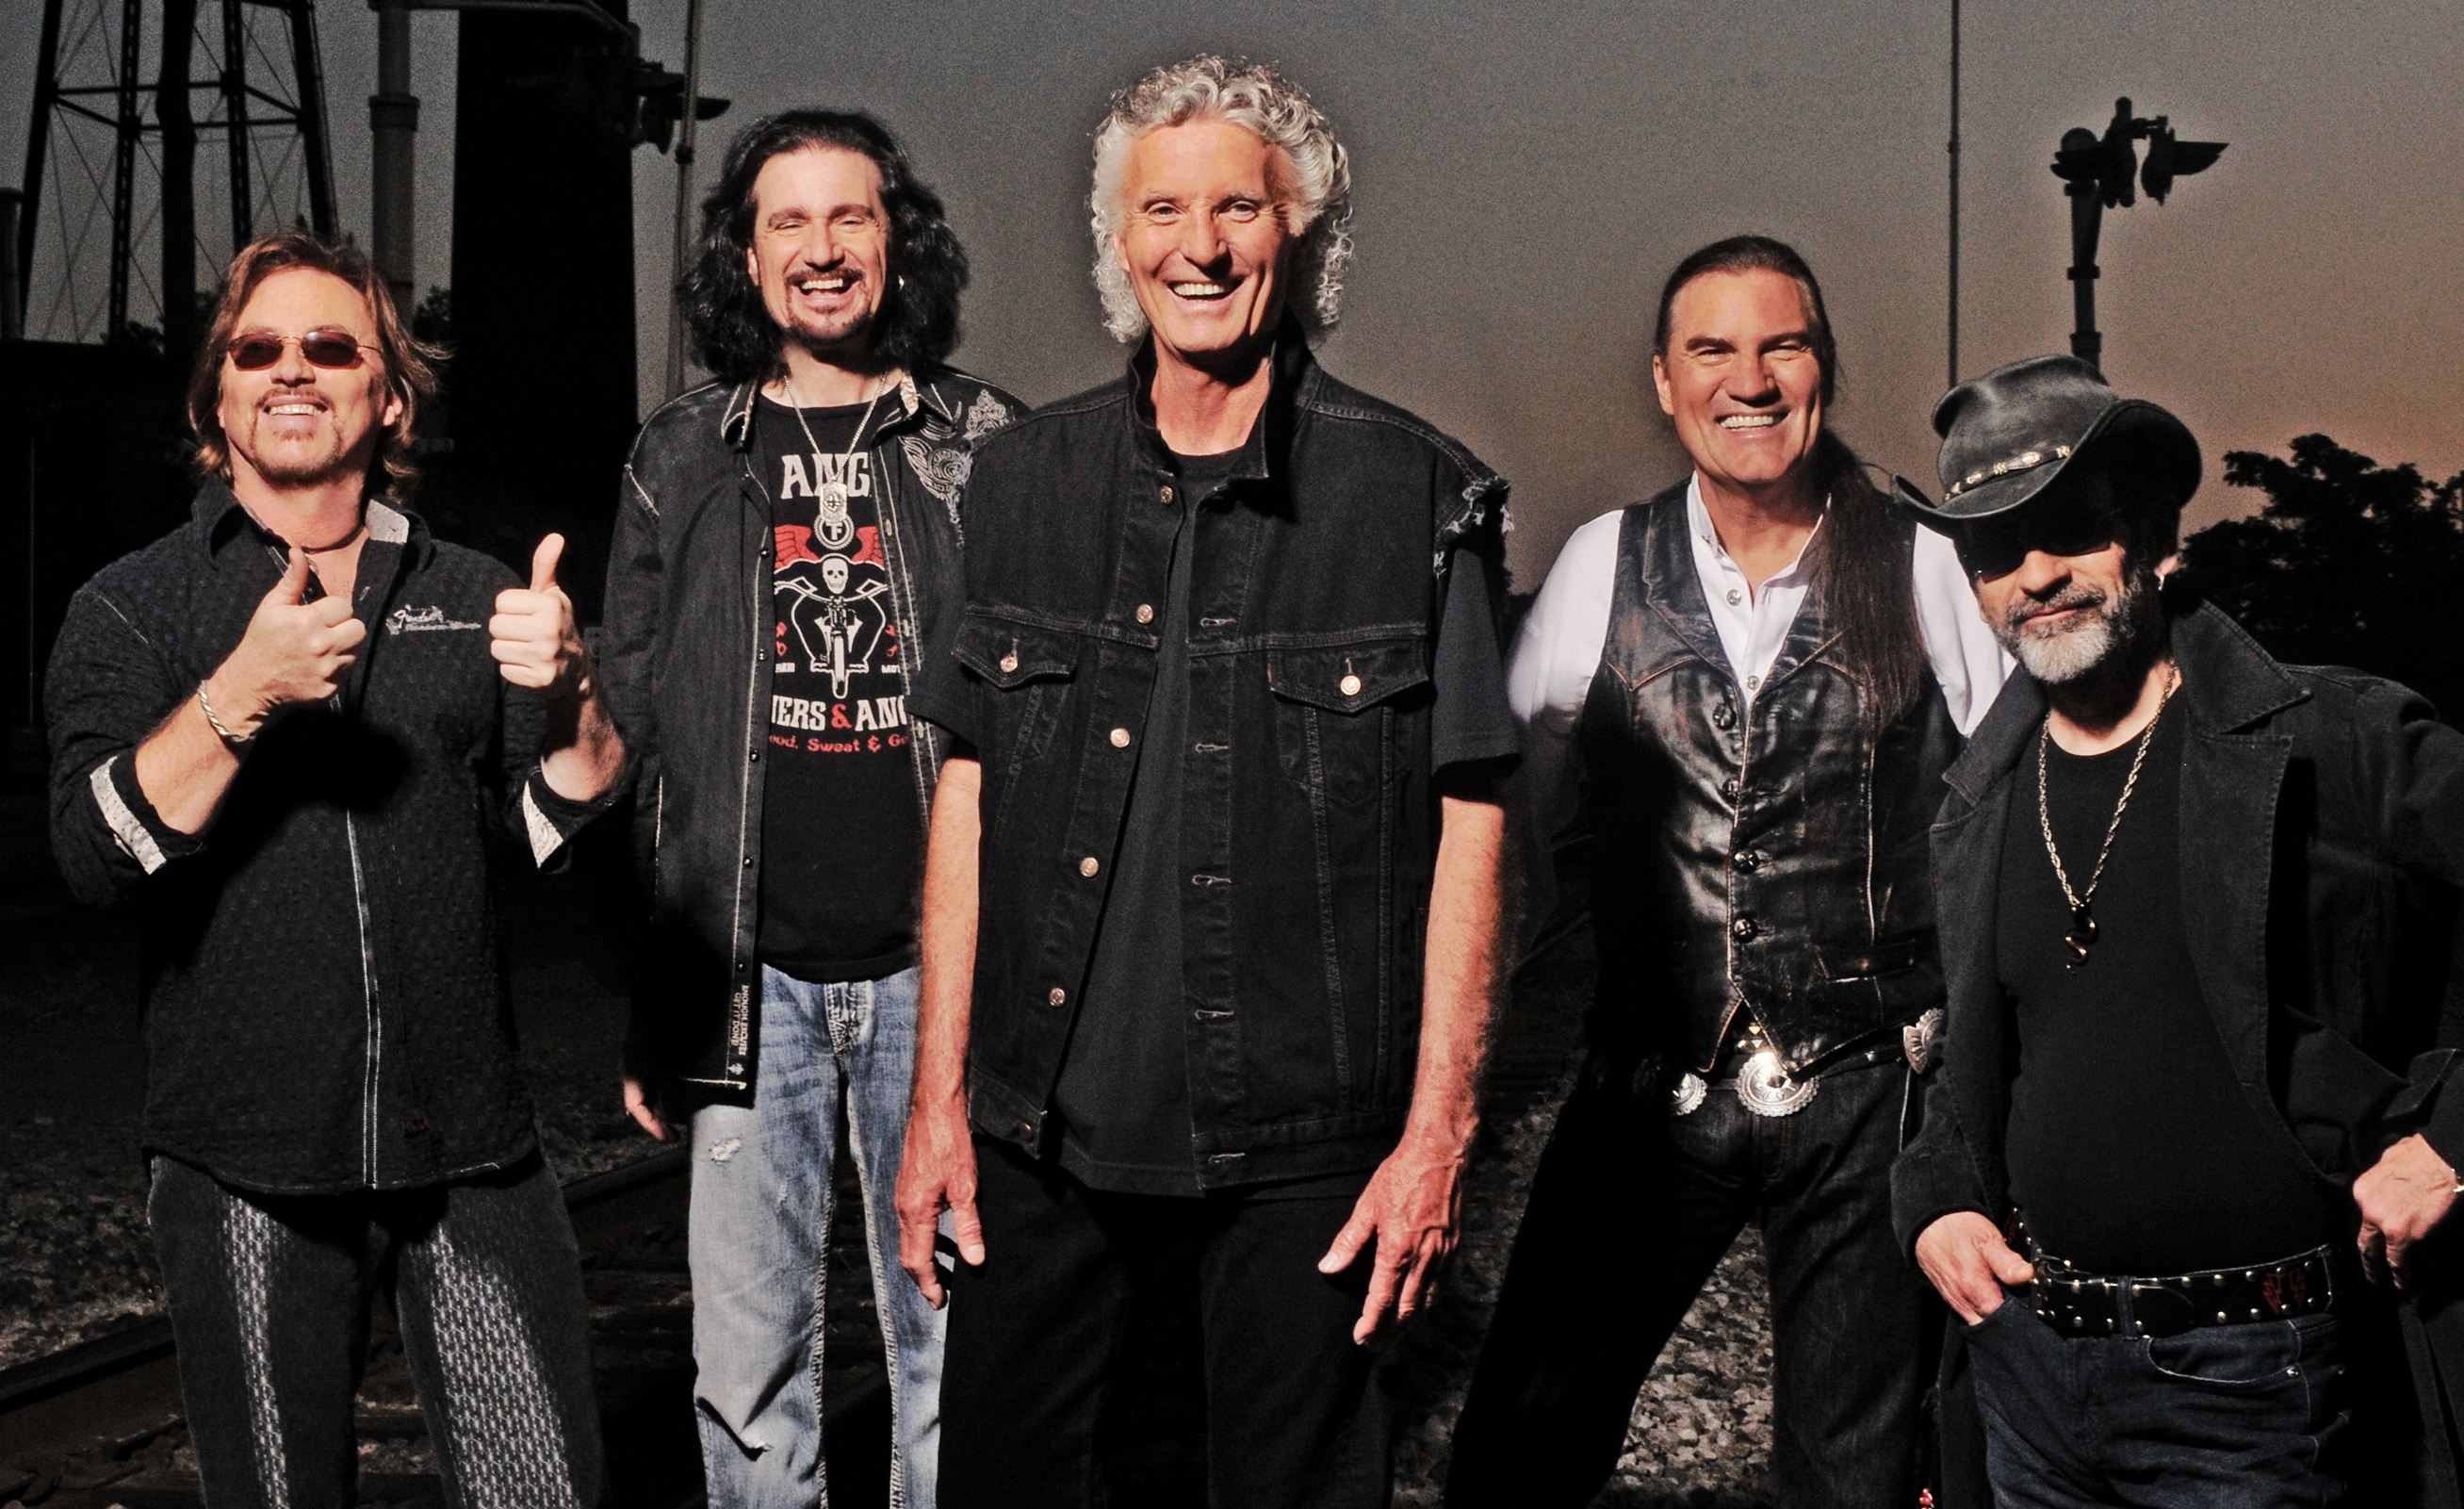 grand funk railroad still rockin after 47 years playing fallsview casino april 30 music. Black Bedroom Furniture Sets. Home Design Ideas